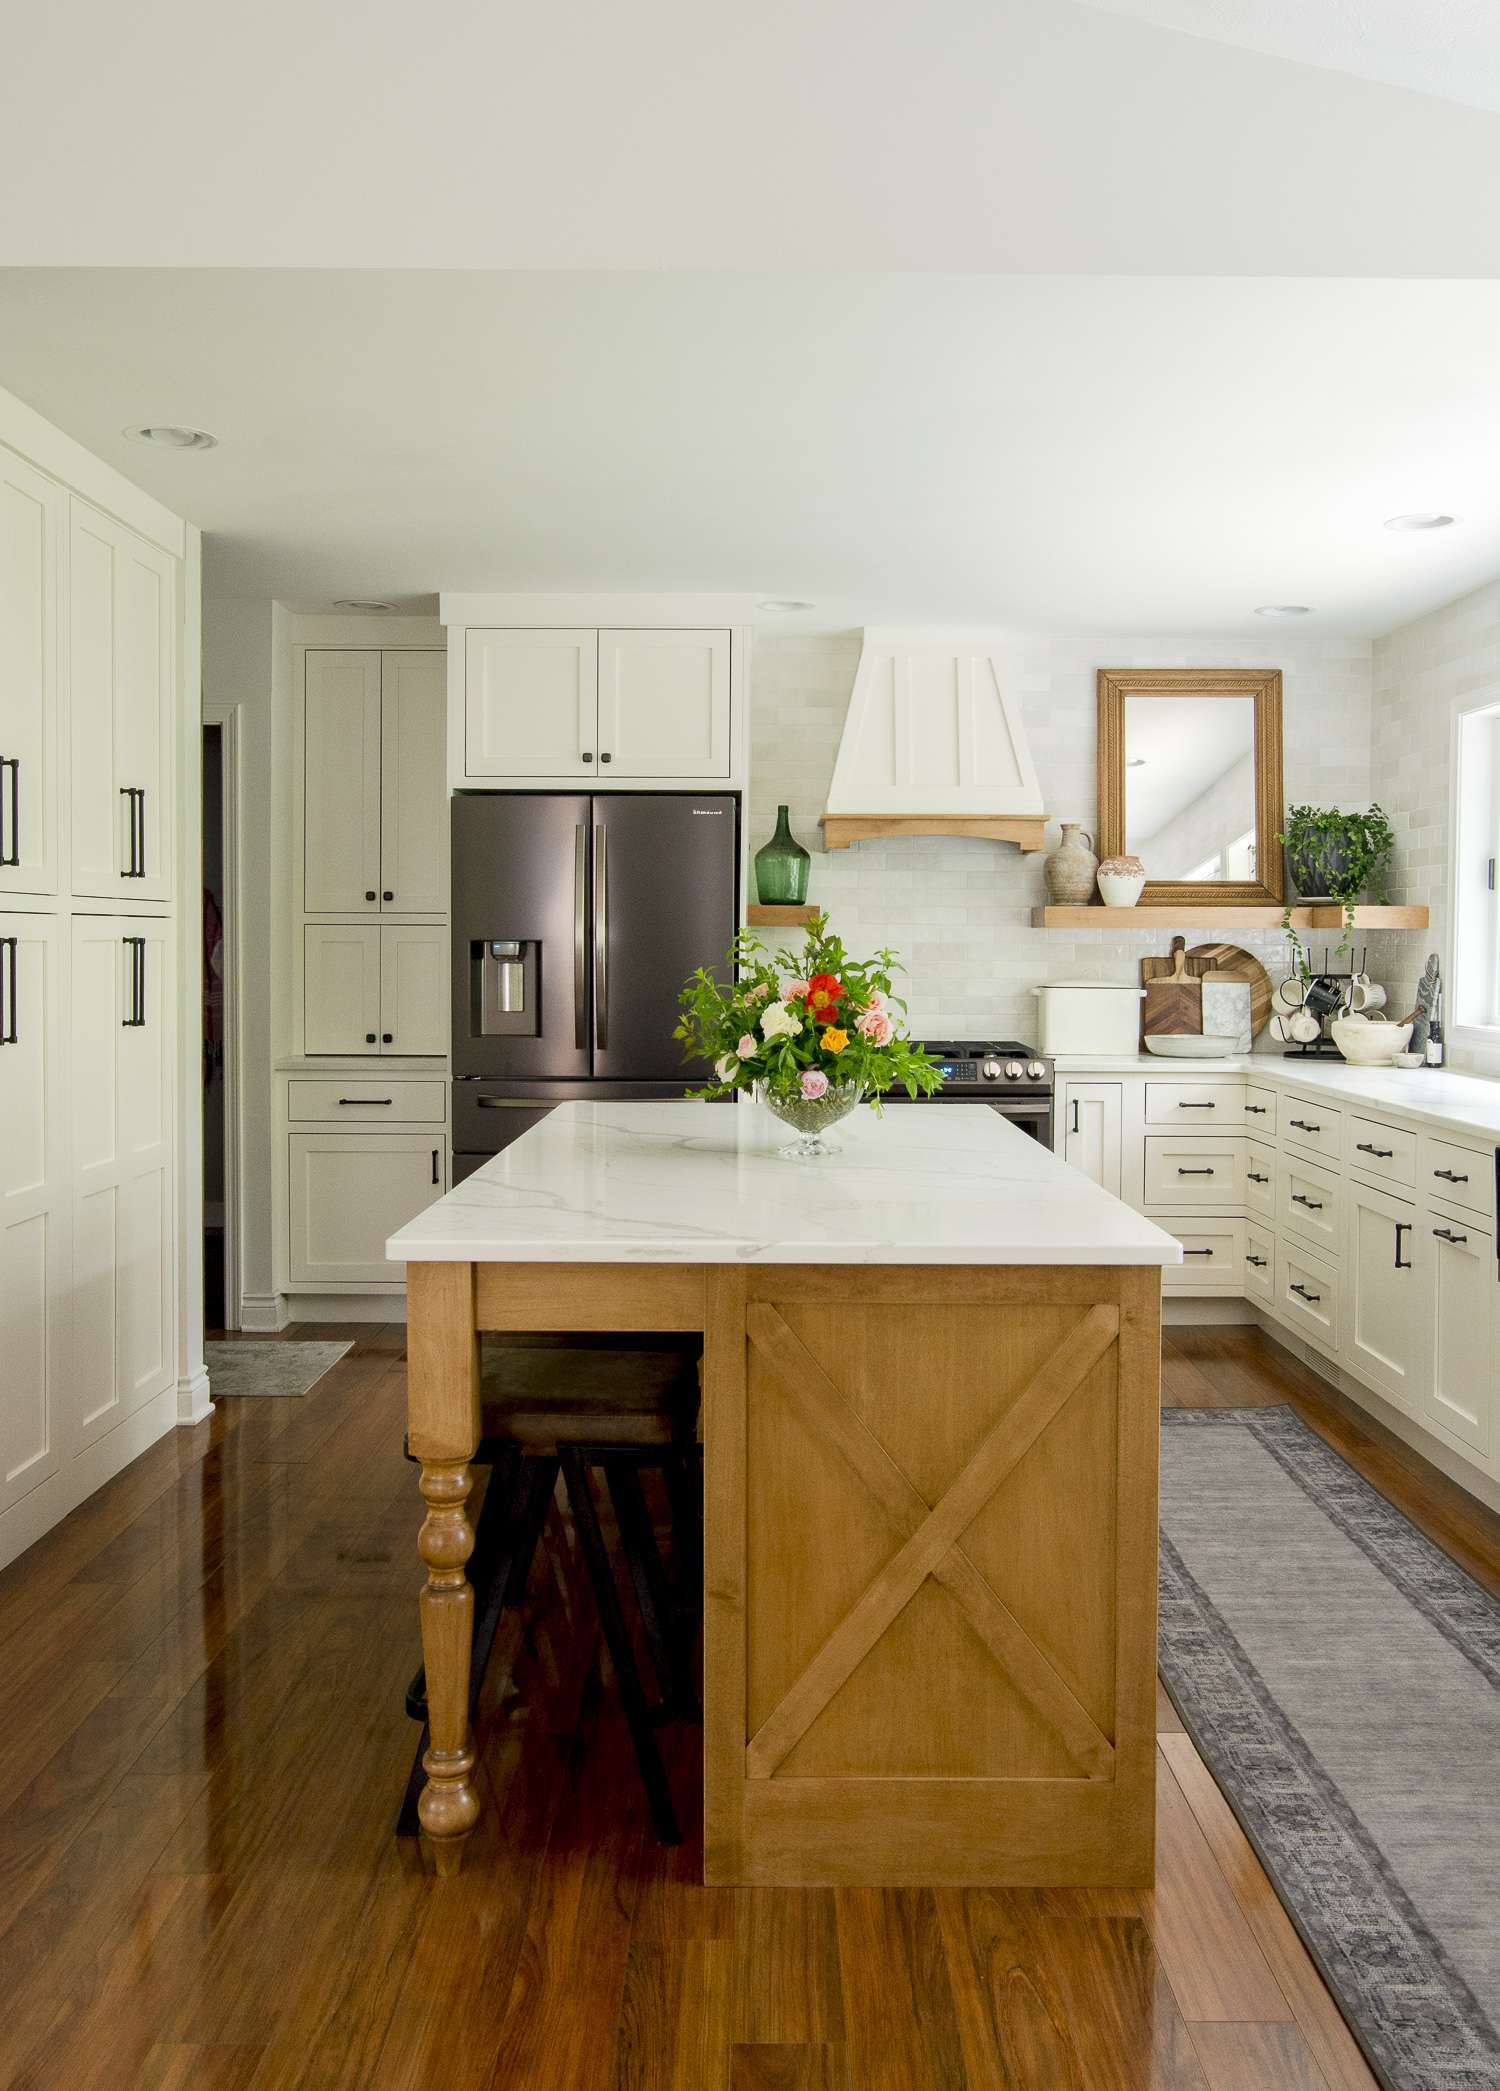 Central island in a kitchen remodel.